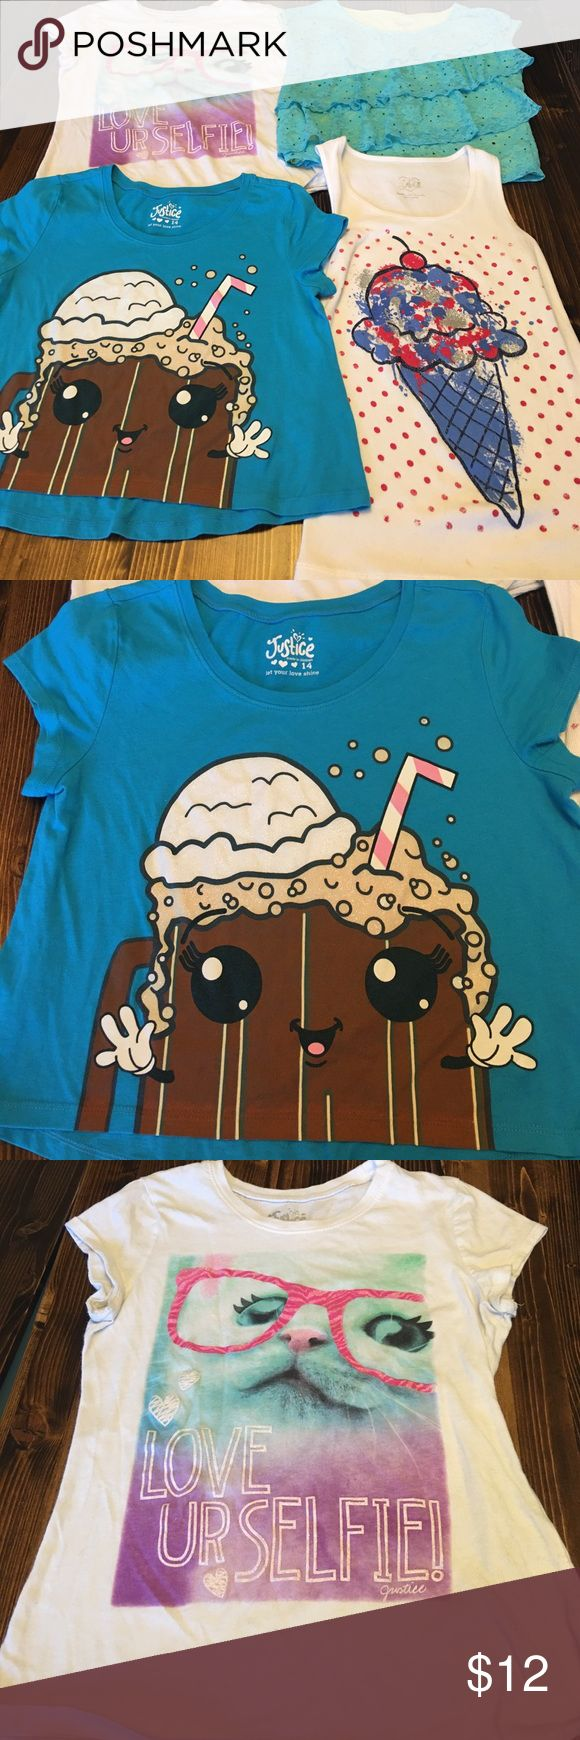 """Justice Shirt Bundle This is a bundle for 4 Justice Shirts. One is a white tank with an ice cream cone in blue, red, and silver. The second is a blue turquoise crop with an root beer float. The third is a white tee with a cat with pink glasses. The shirt reads """"Love Ur Selfie."""" The fourth is a turquoise lace with a neon green underlay. Justice Shirts & Tops Tees - Short Sleeve"""